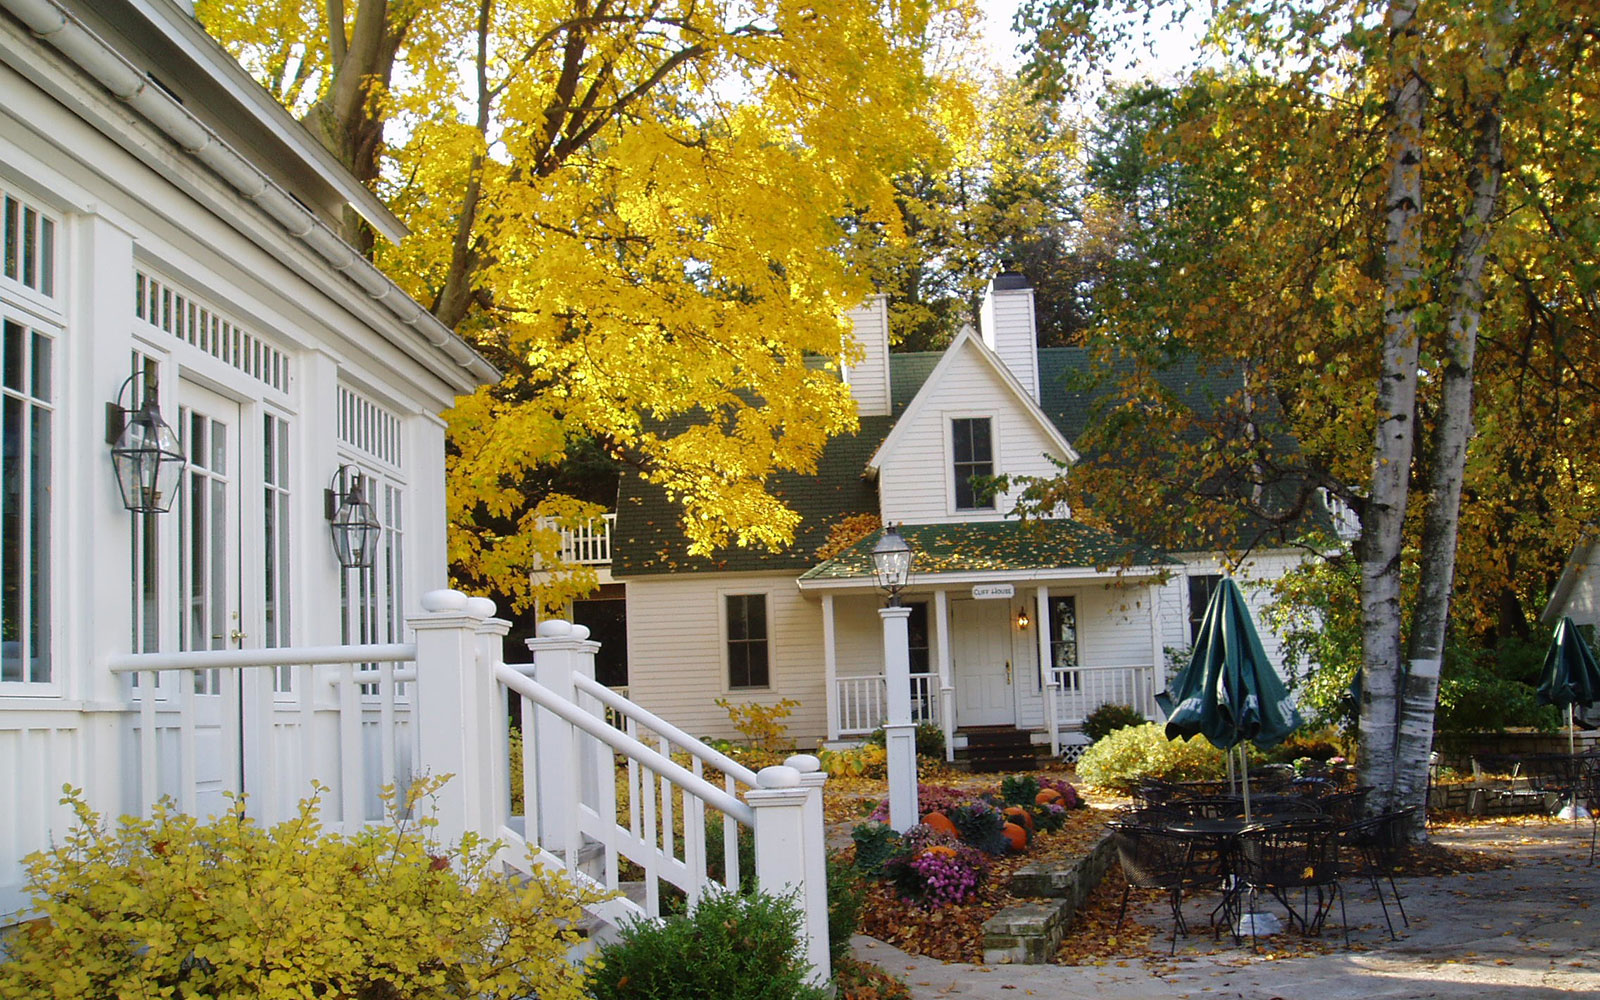 America's Best Hotels for Fall Colors: The White Gull Inn, Fish Creek, WI